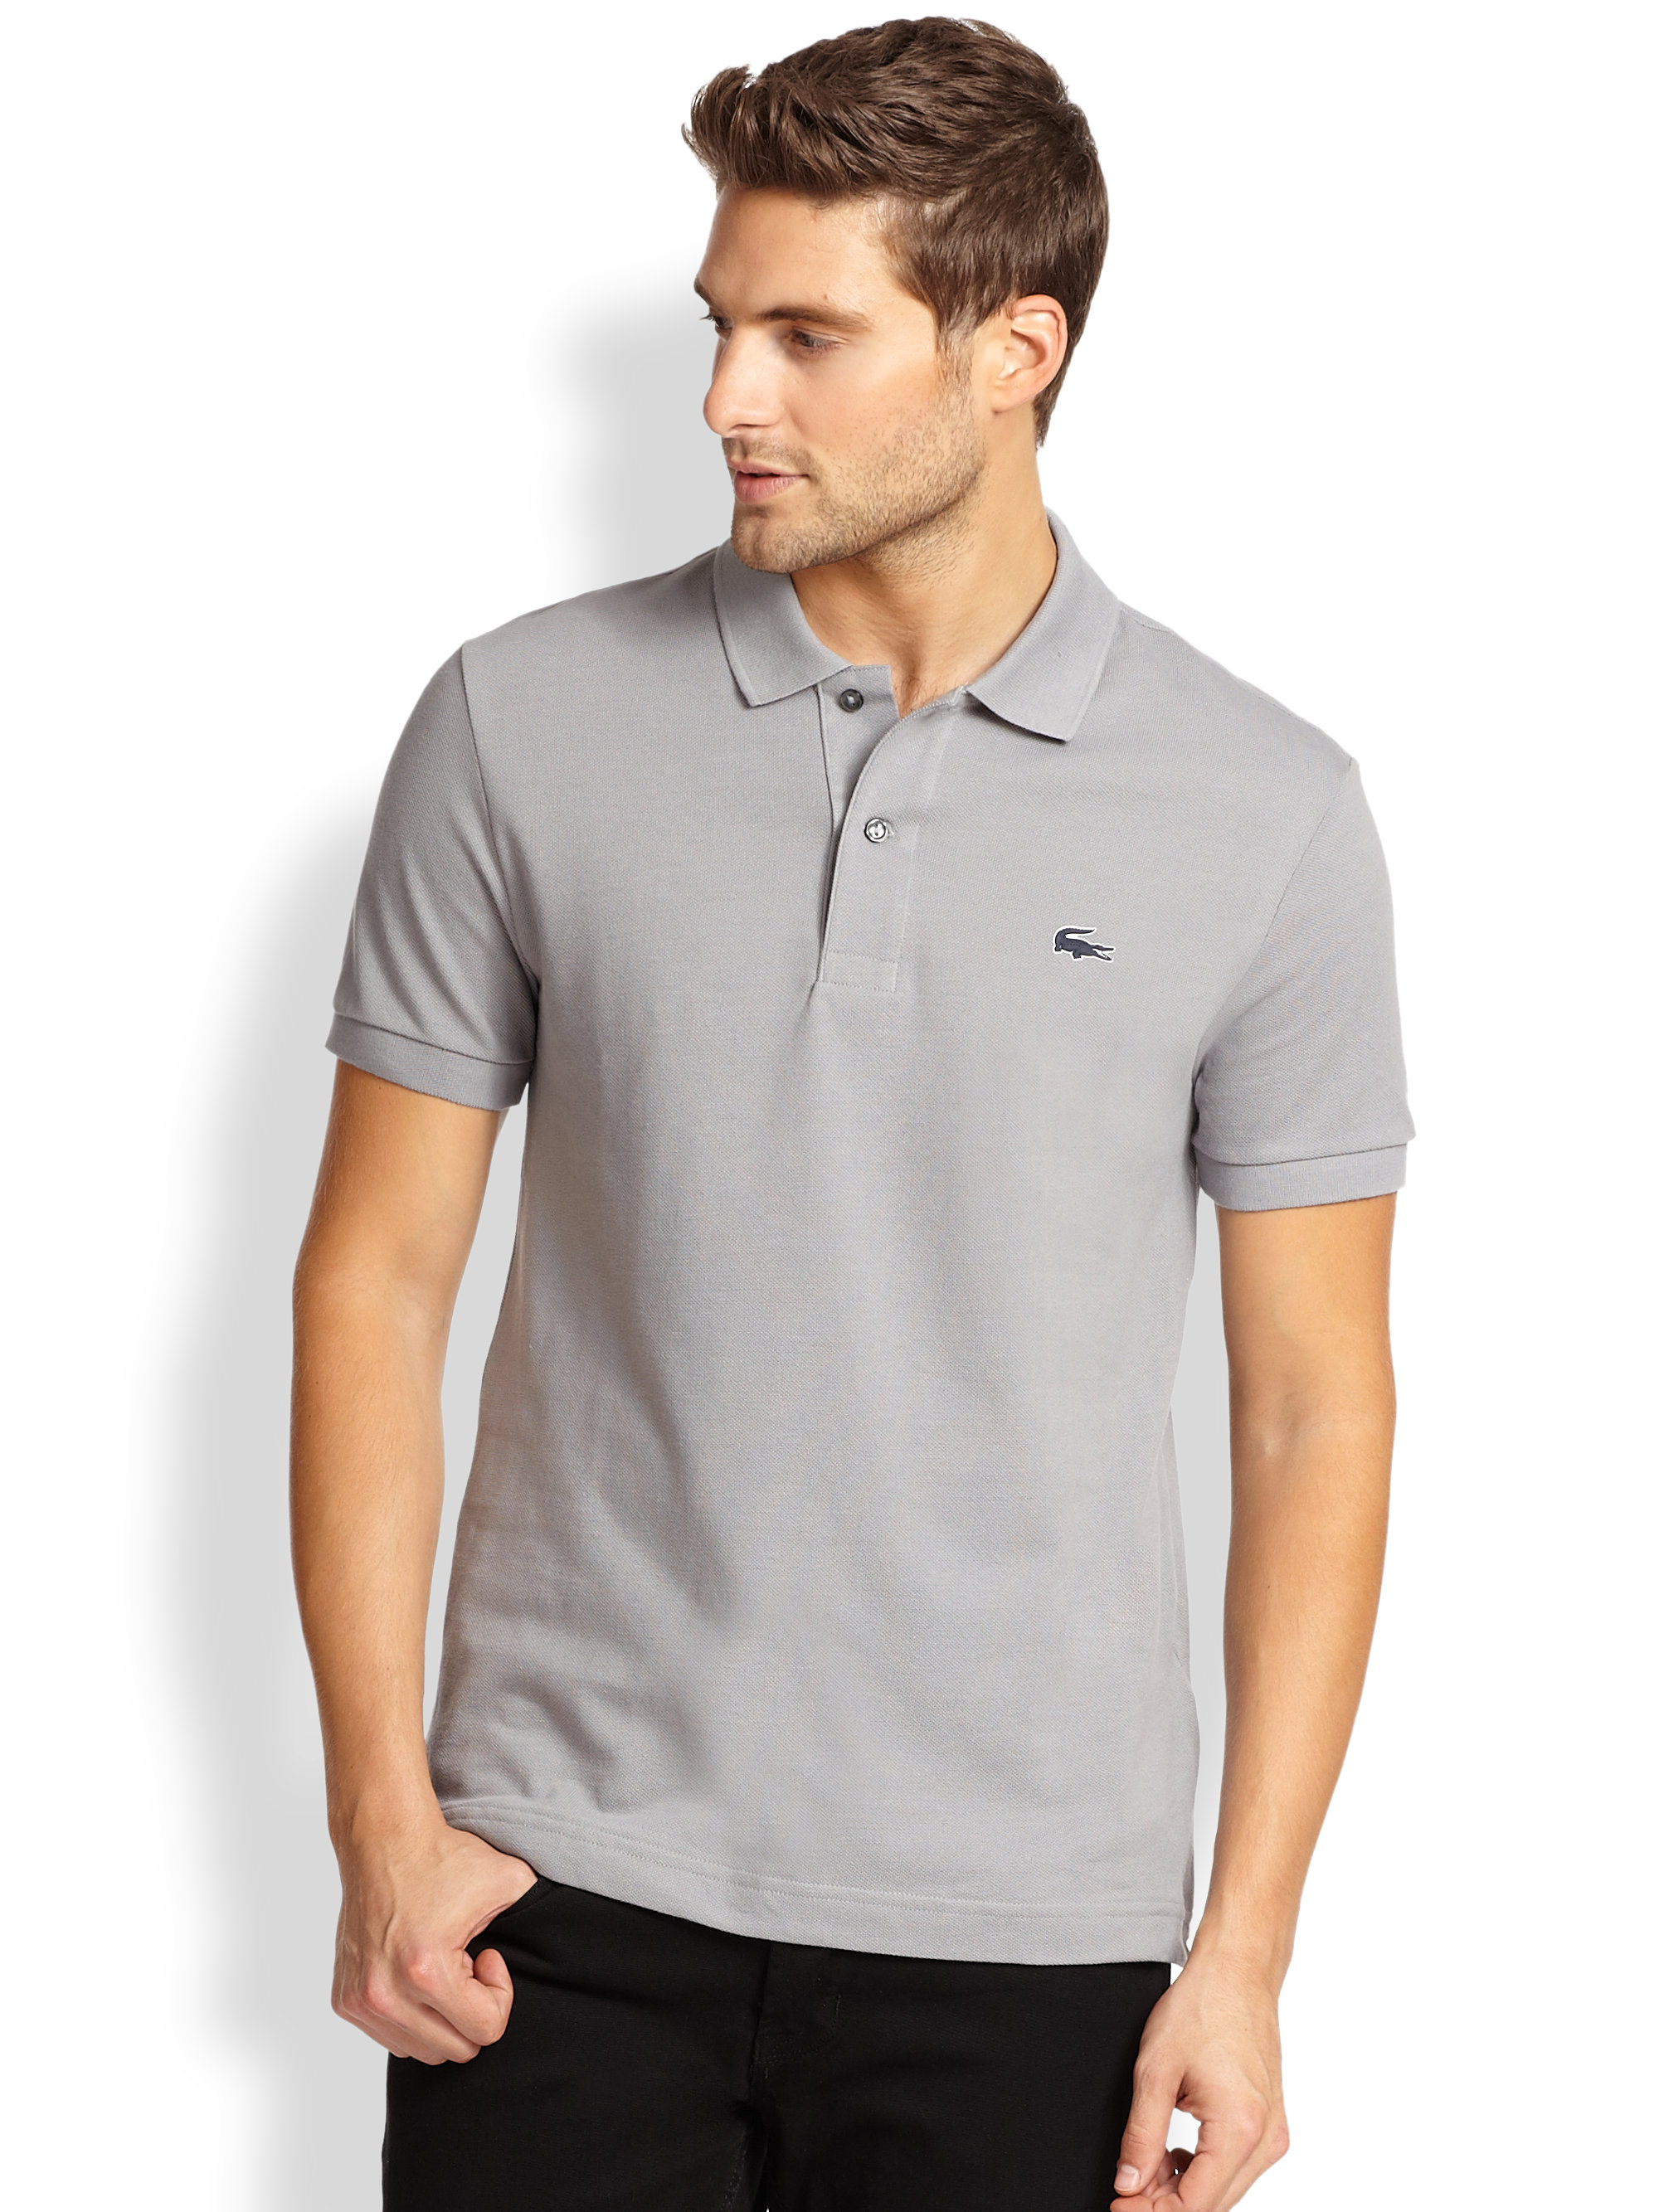 Lacoste men polo shirt stripe pique logo grey lacoste men for Lacoste stripe pique polo shirt